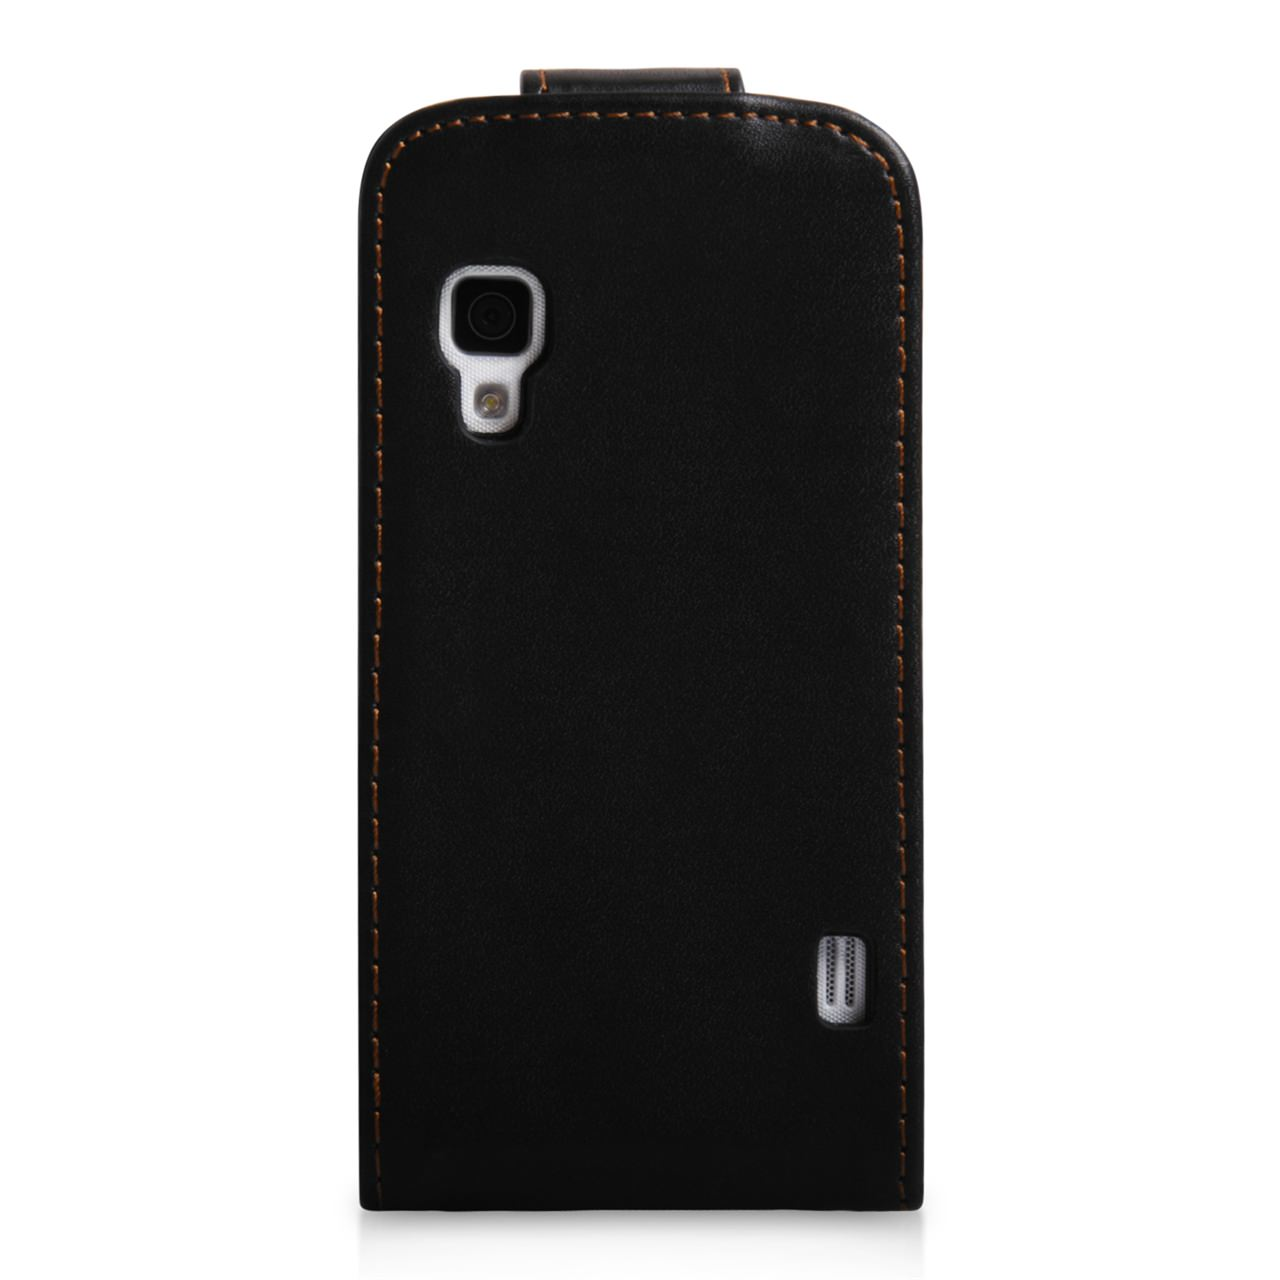 YouSave Accessories LG Optimus L5 II Black Leather Effect Flip Case